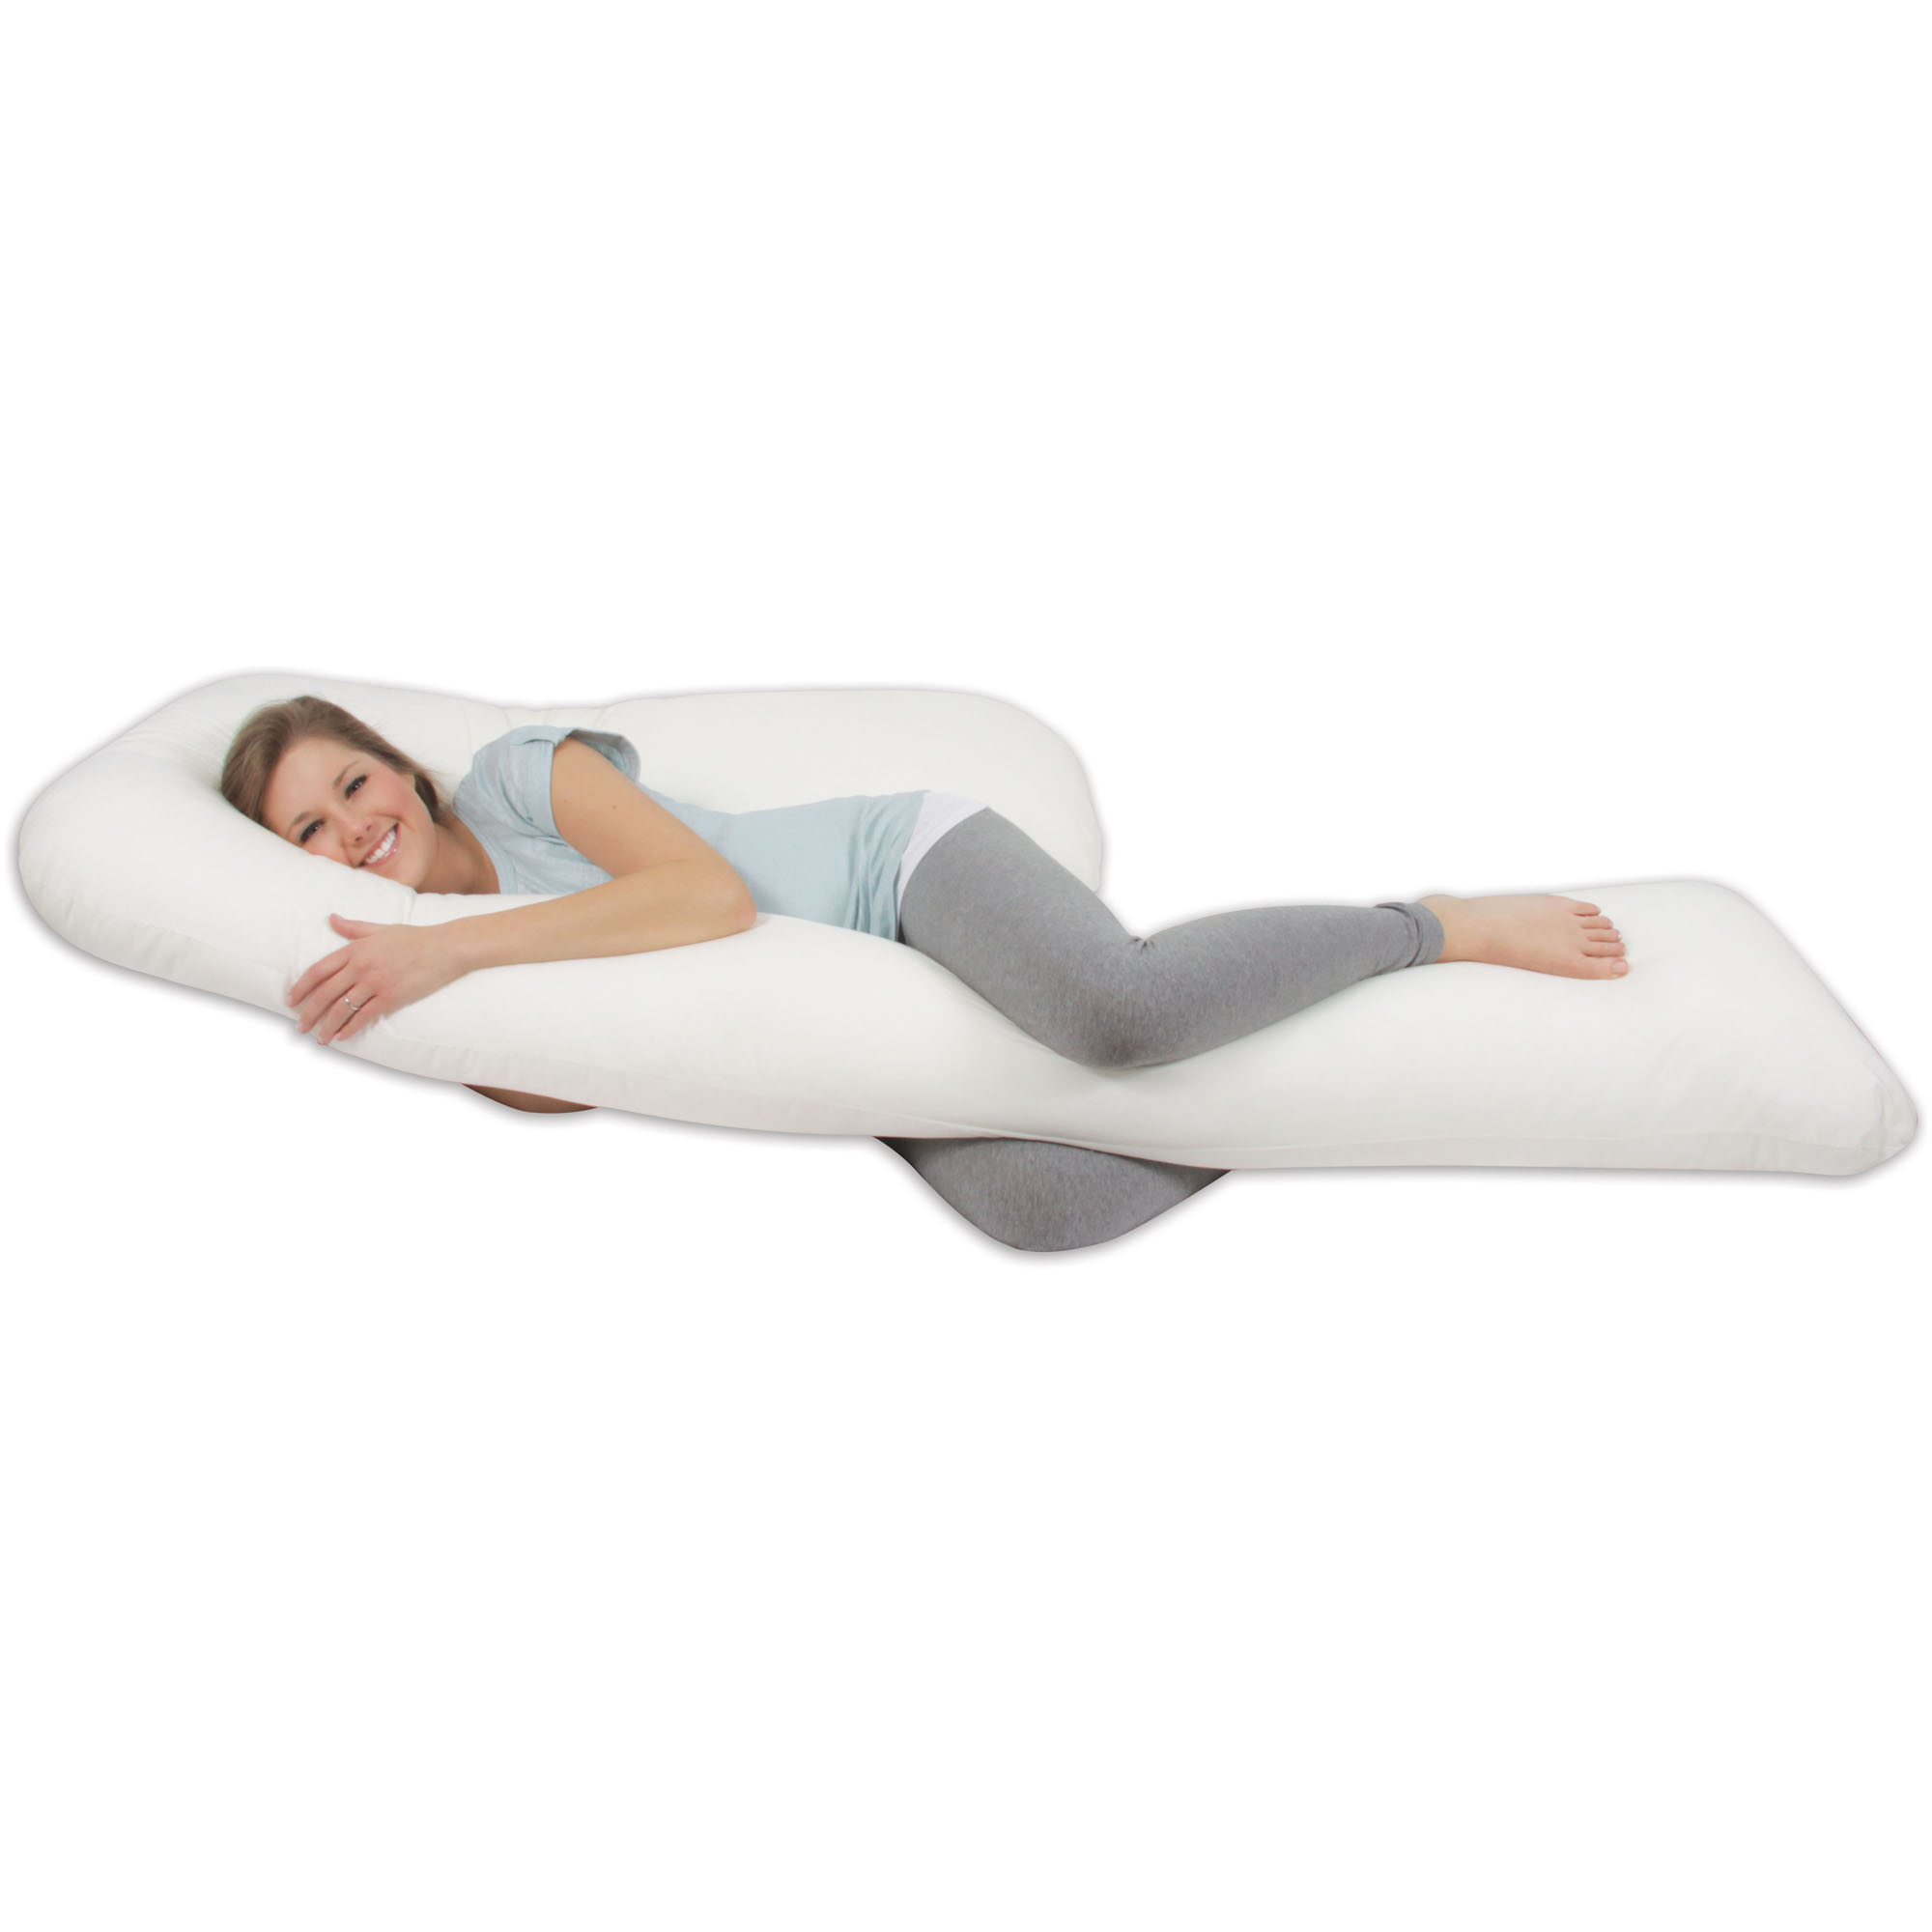 pregnancy pillow for office chair classroom rocking u shaped body walmart